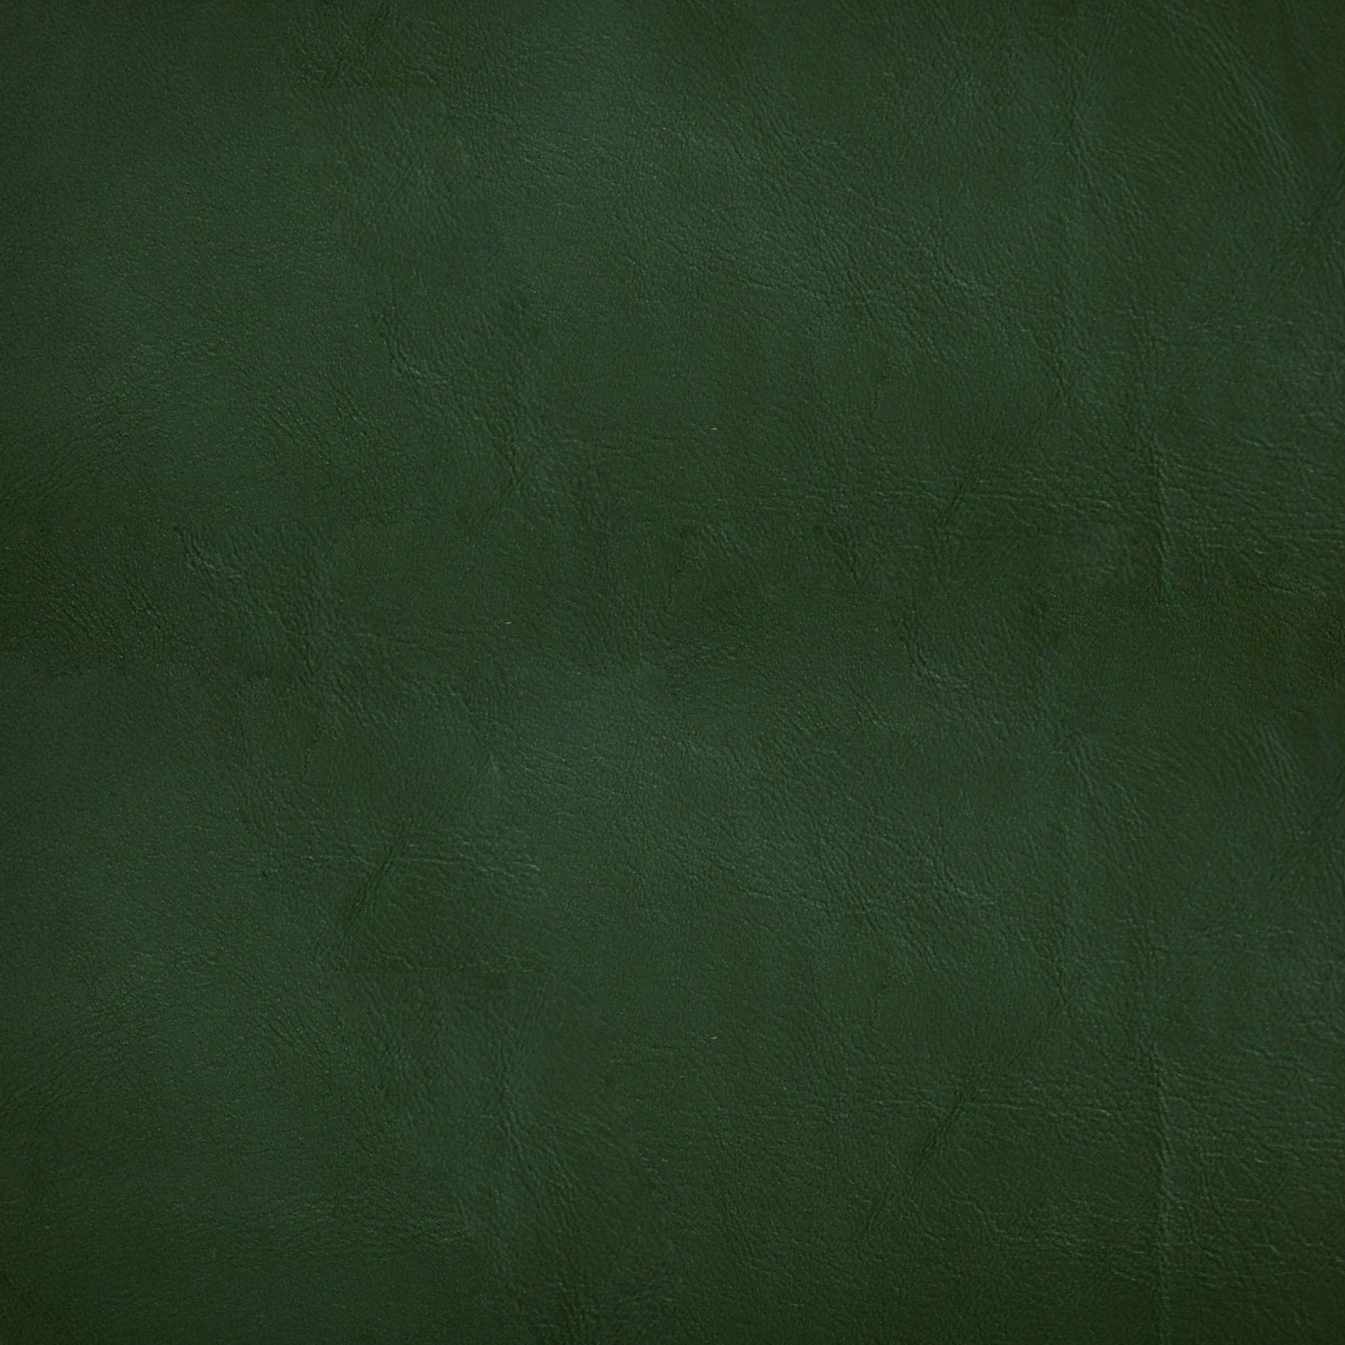 moss green leather for furniture upholstery